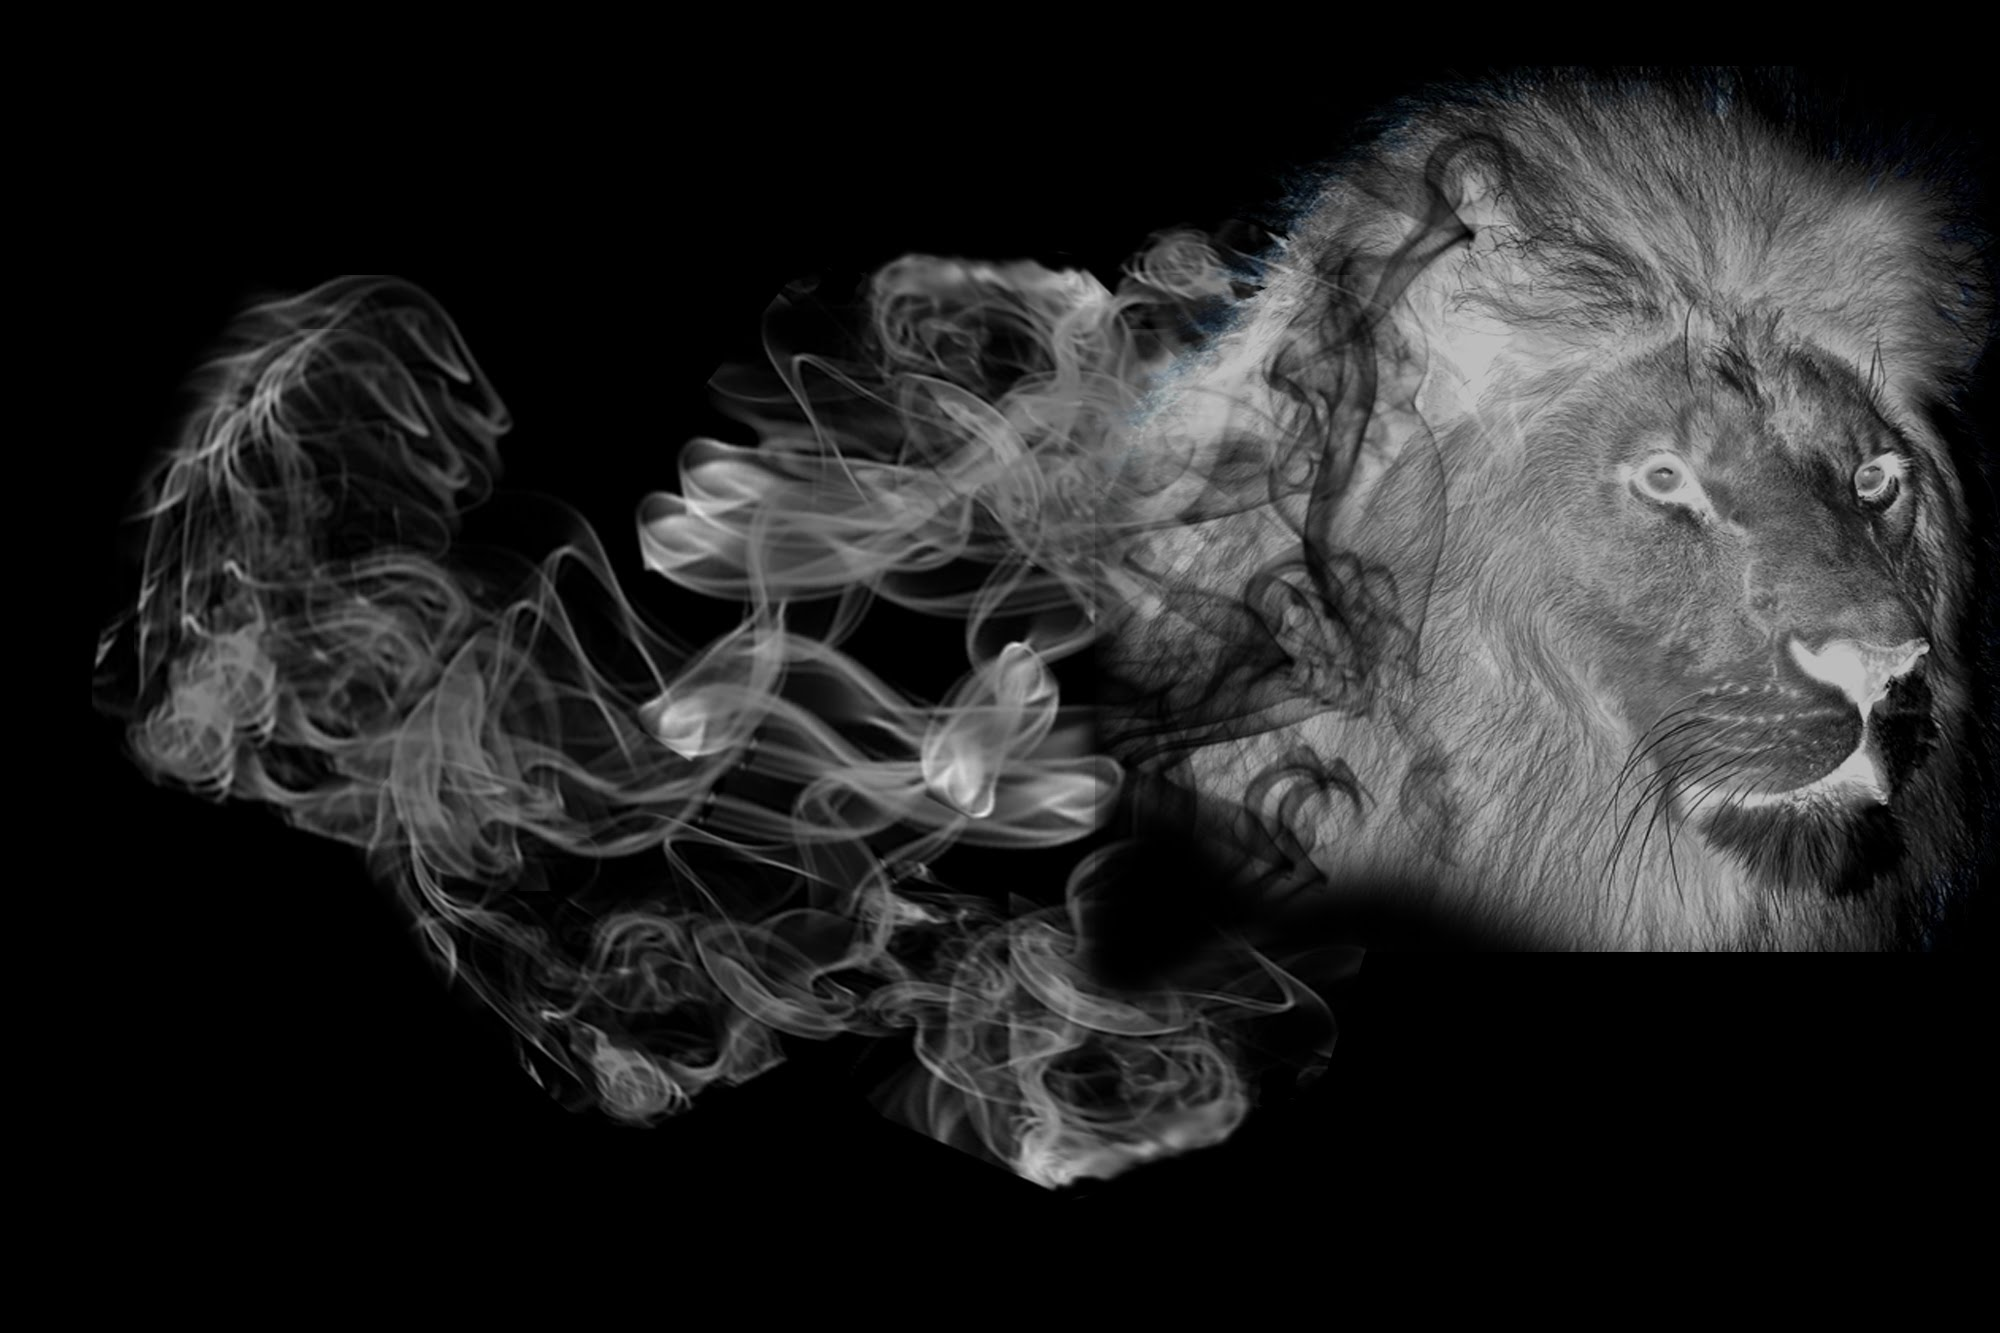 adobe photoshop how to make a smoke effect - Smoke Effect PNG